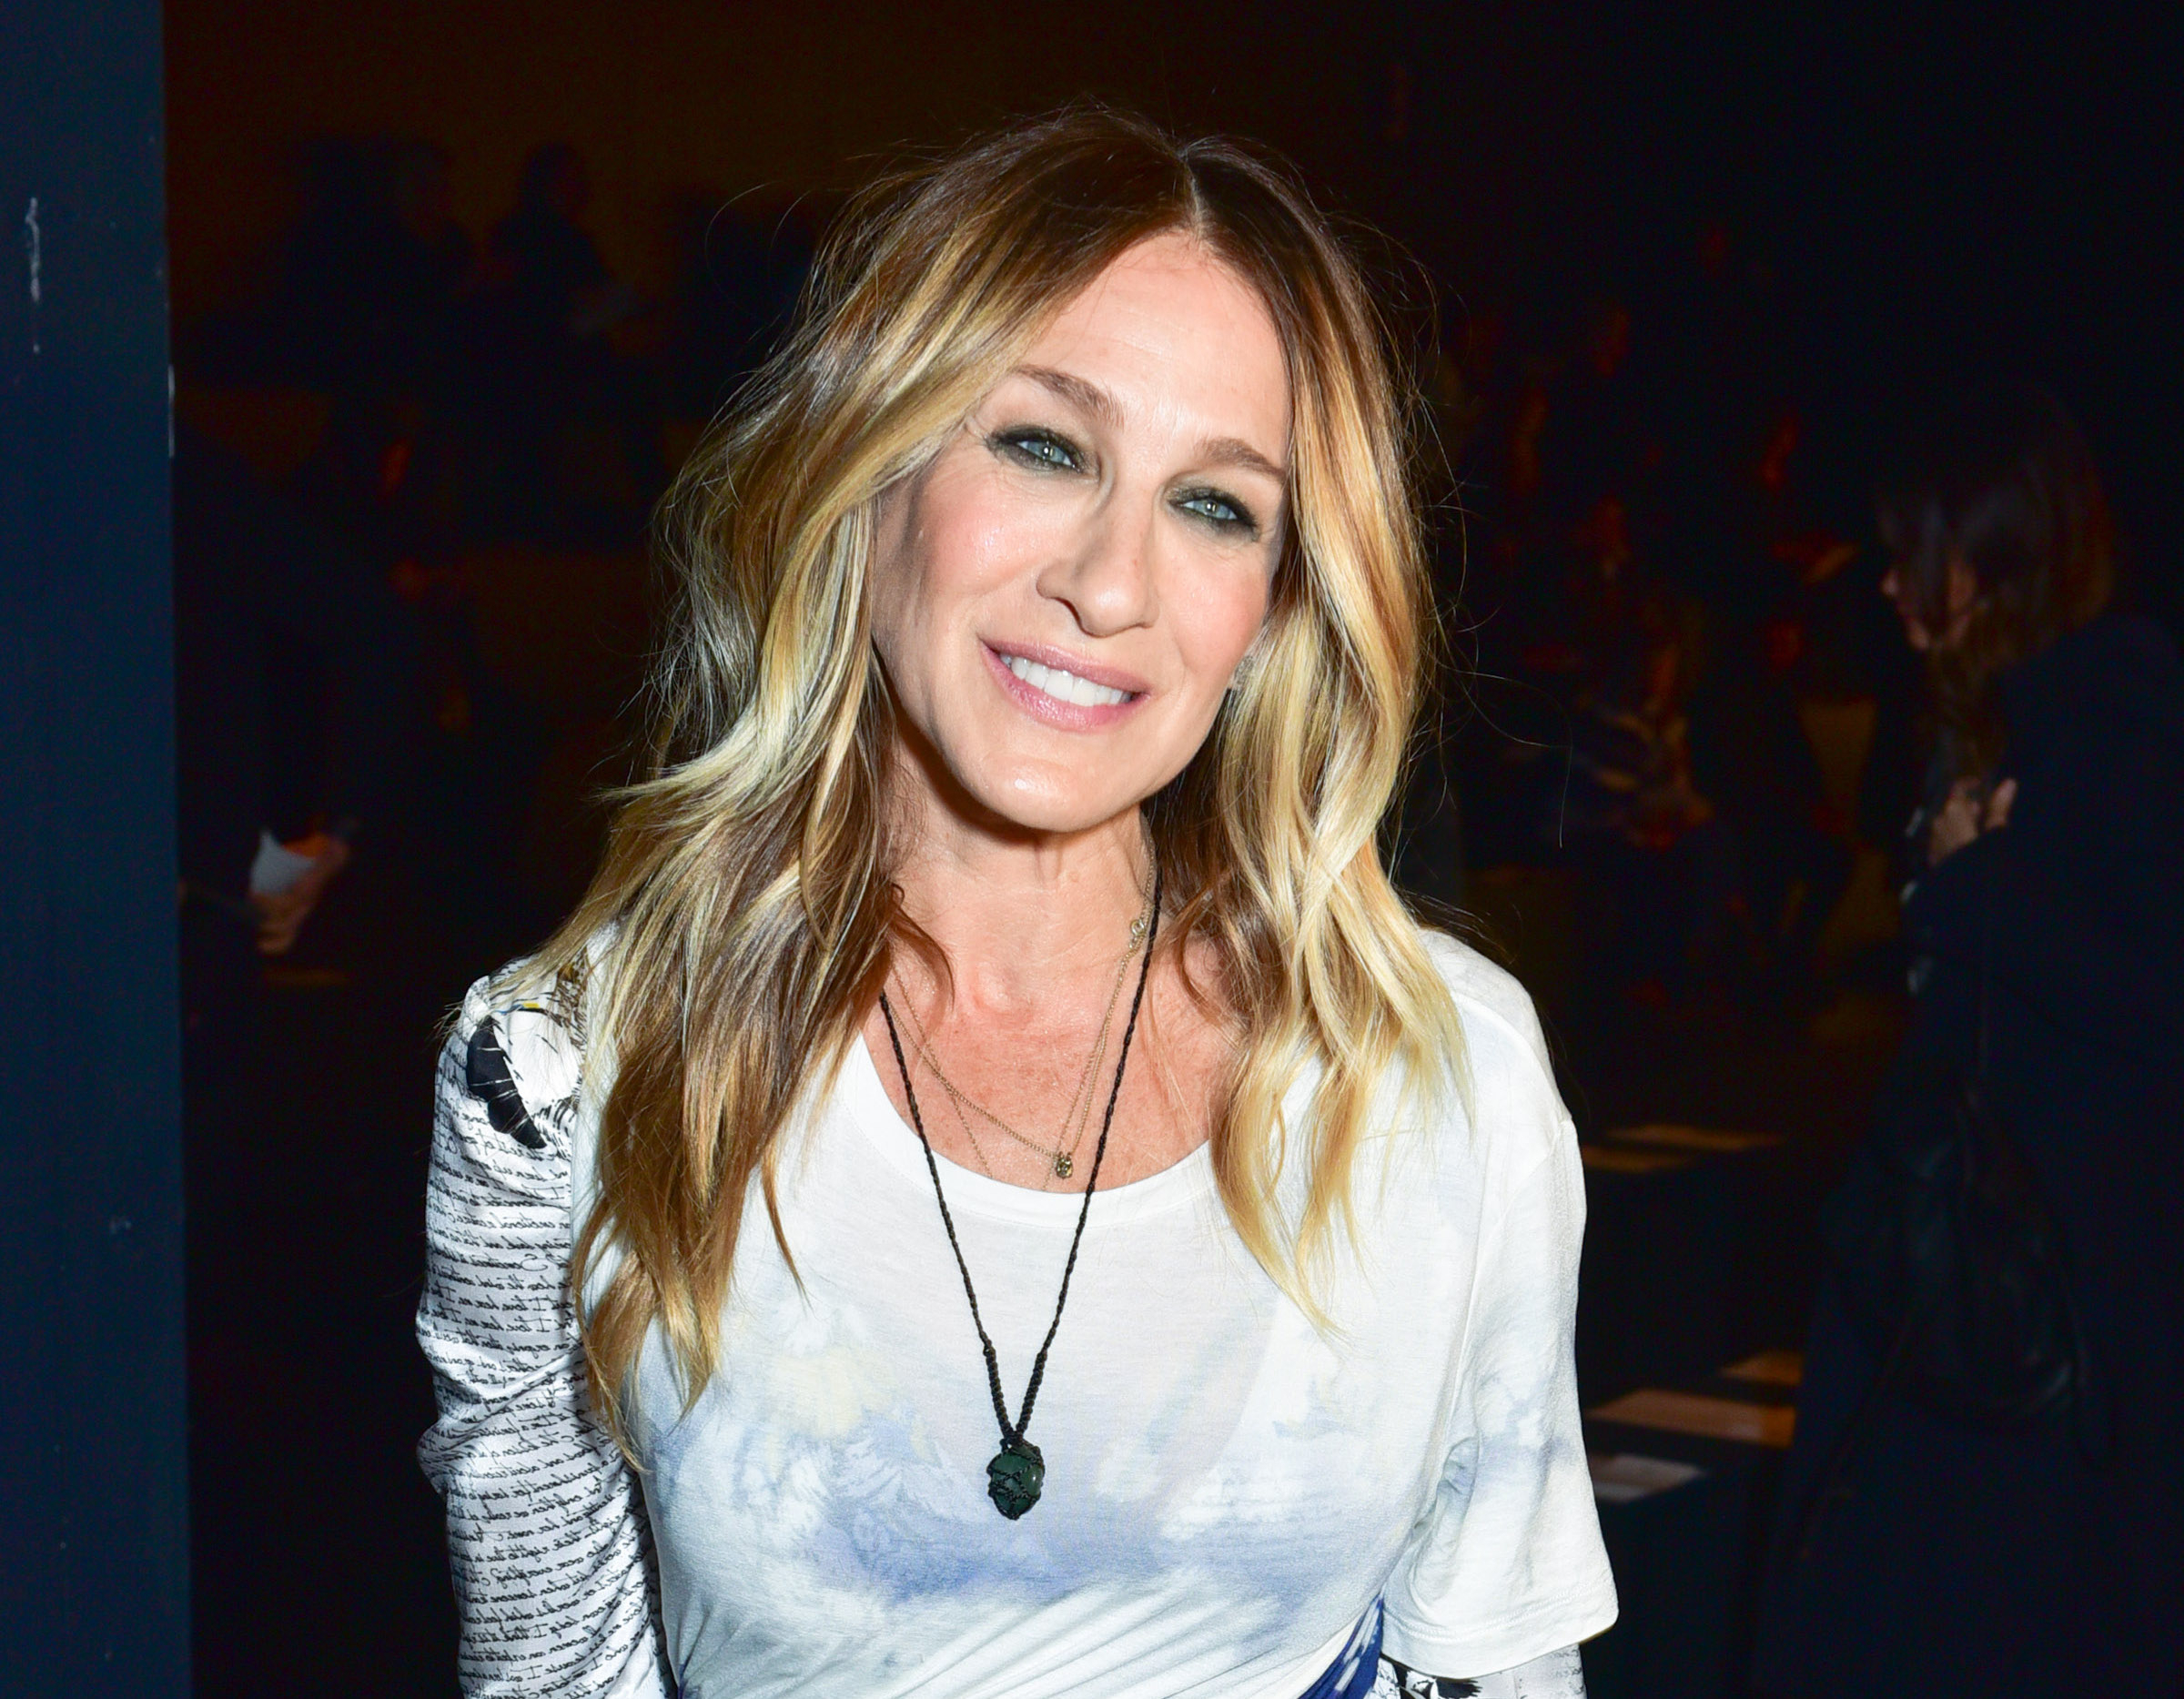 Sarah Jessica Parker Just Got Bangs, And It's A Chic New Hairstyle With 2017 Sarah Jessica Parker Medium Hairstyles (View 17 of 20)